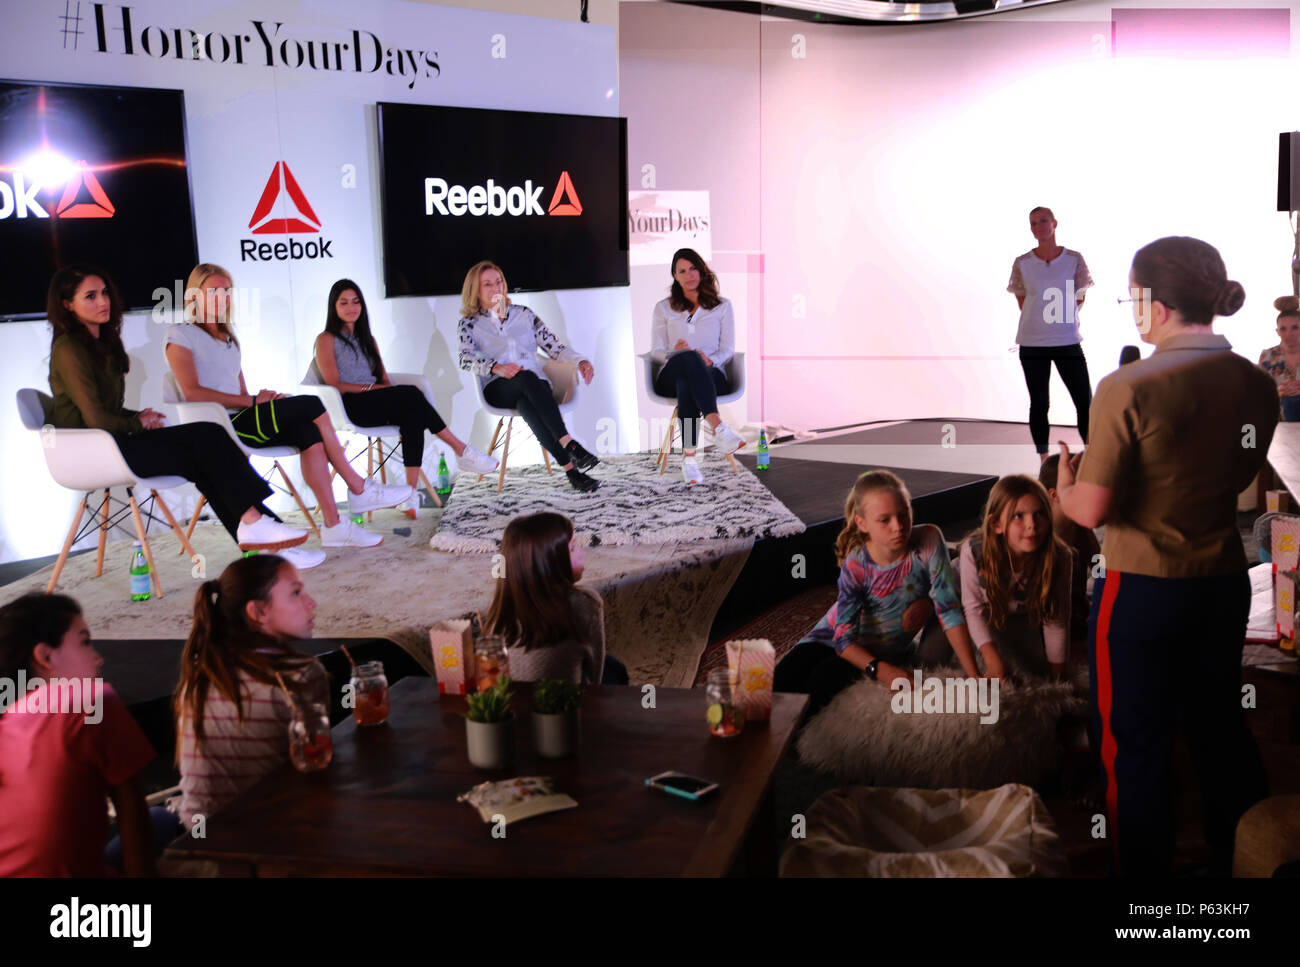 Major Misty Posey speaks to a panel of women at the Reebok